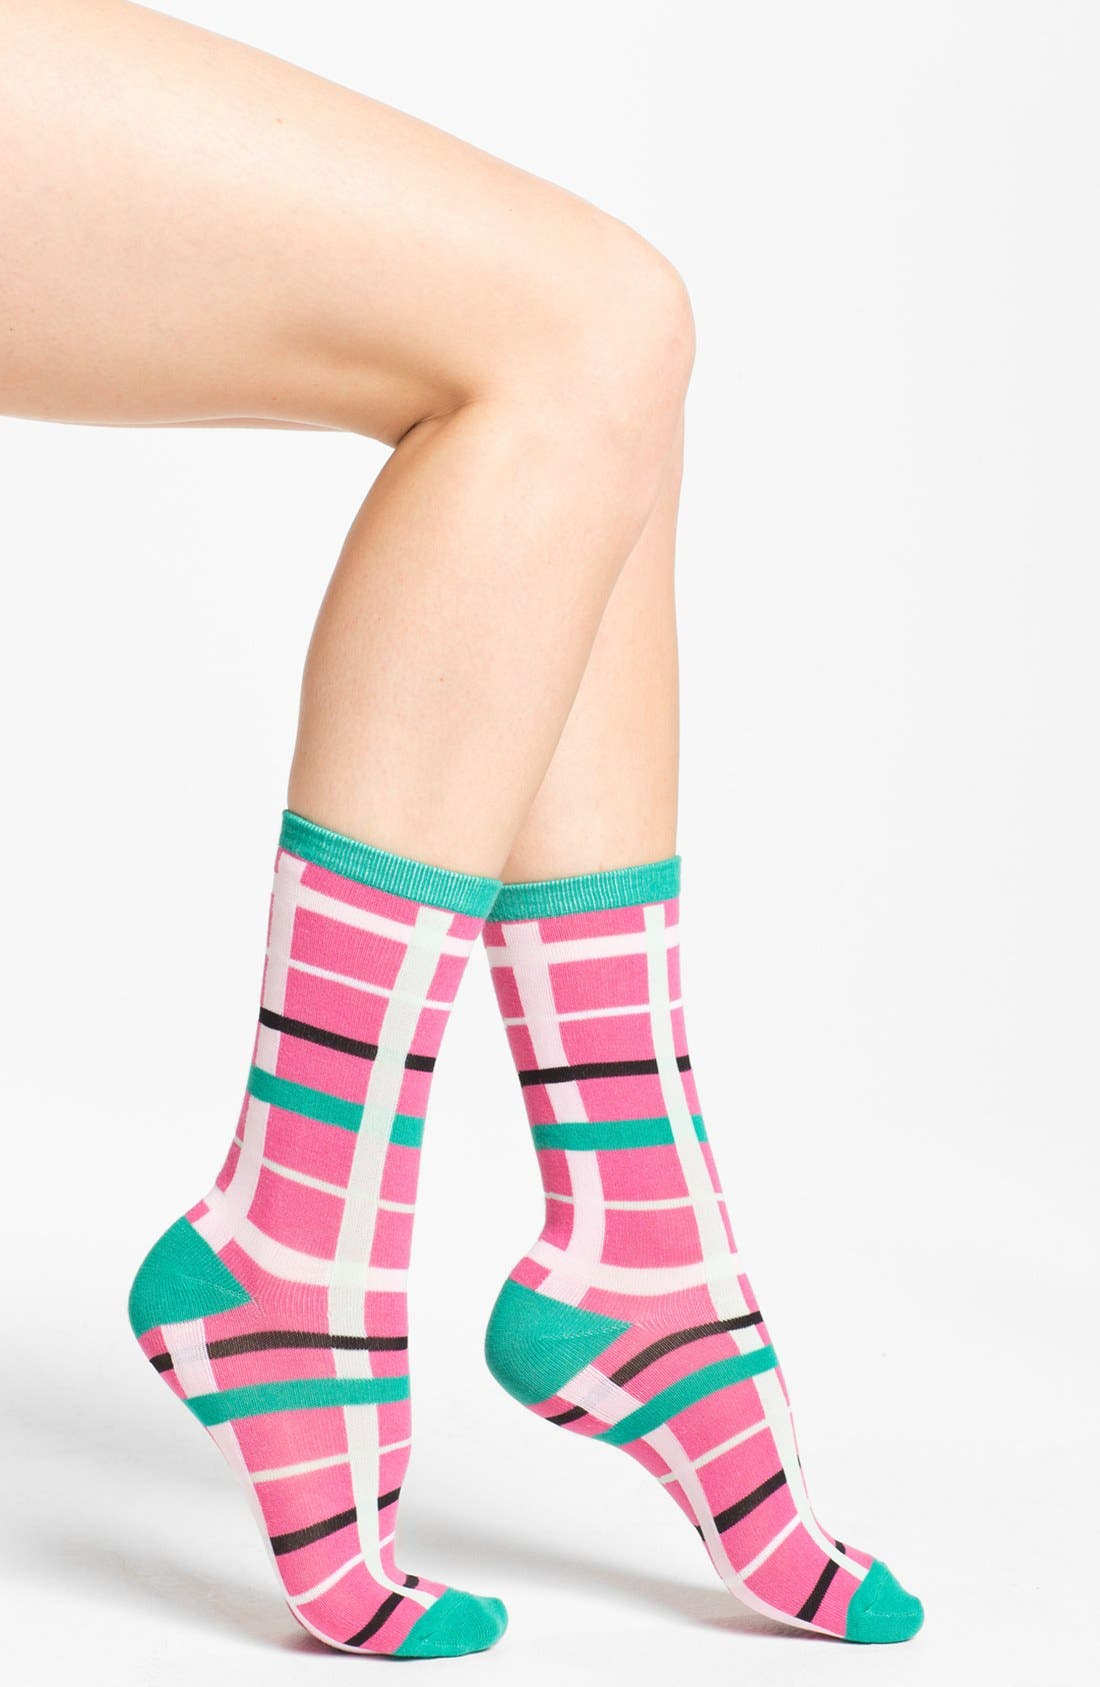 Alternate Image 1 Selected - Nordstrom 'Soft Touch' Plaid Crew Socks